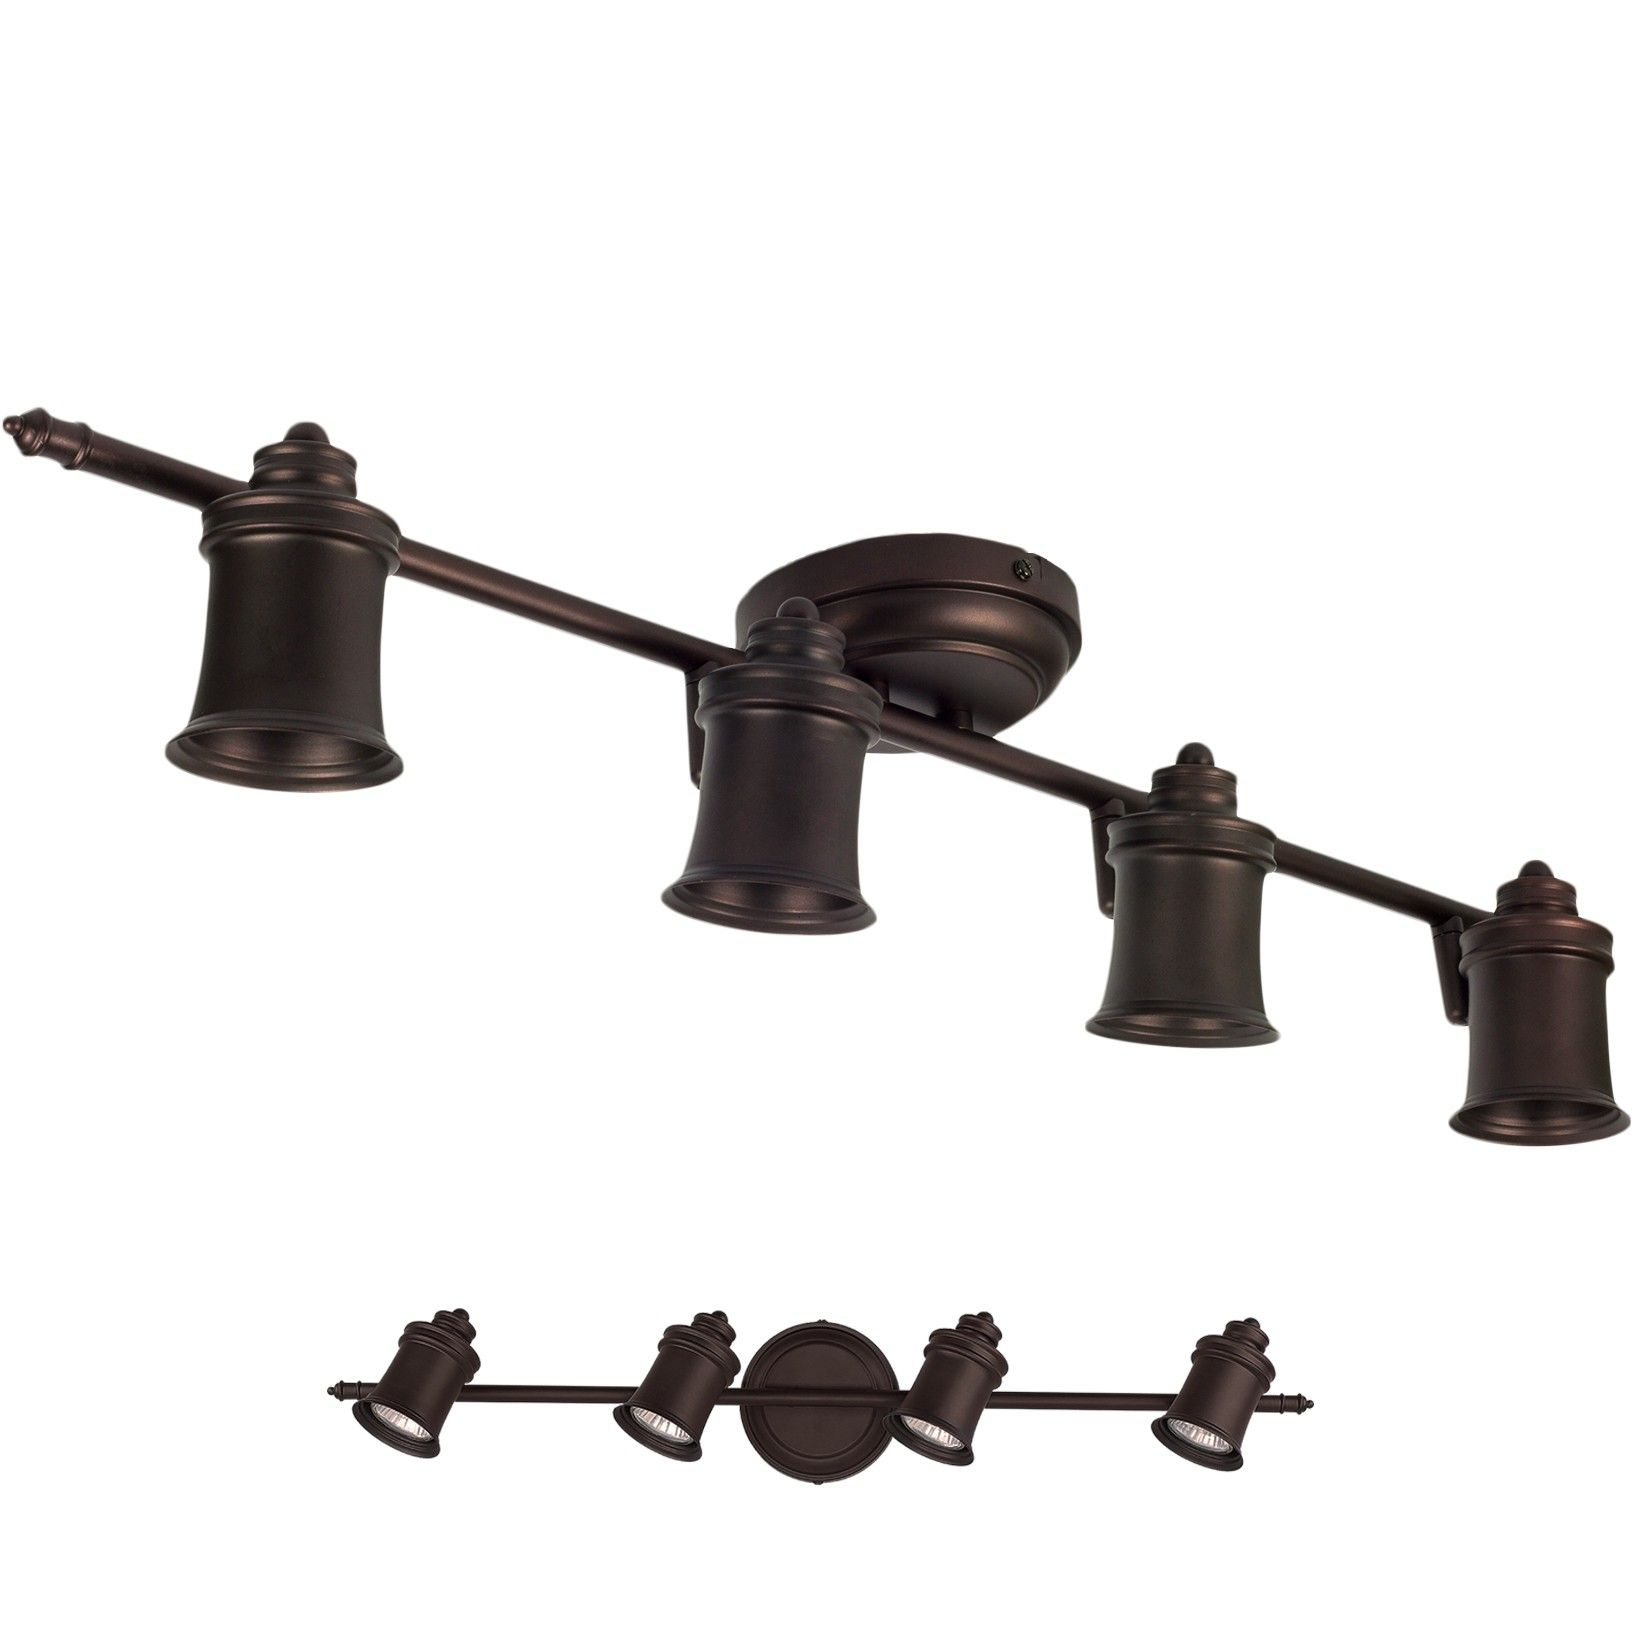 Kitchen Track Lighting Fixtures: The CANARM IT299A04ORB10 From The Taylor Collection Is A